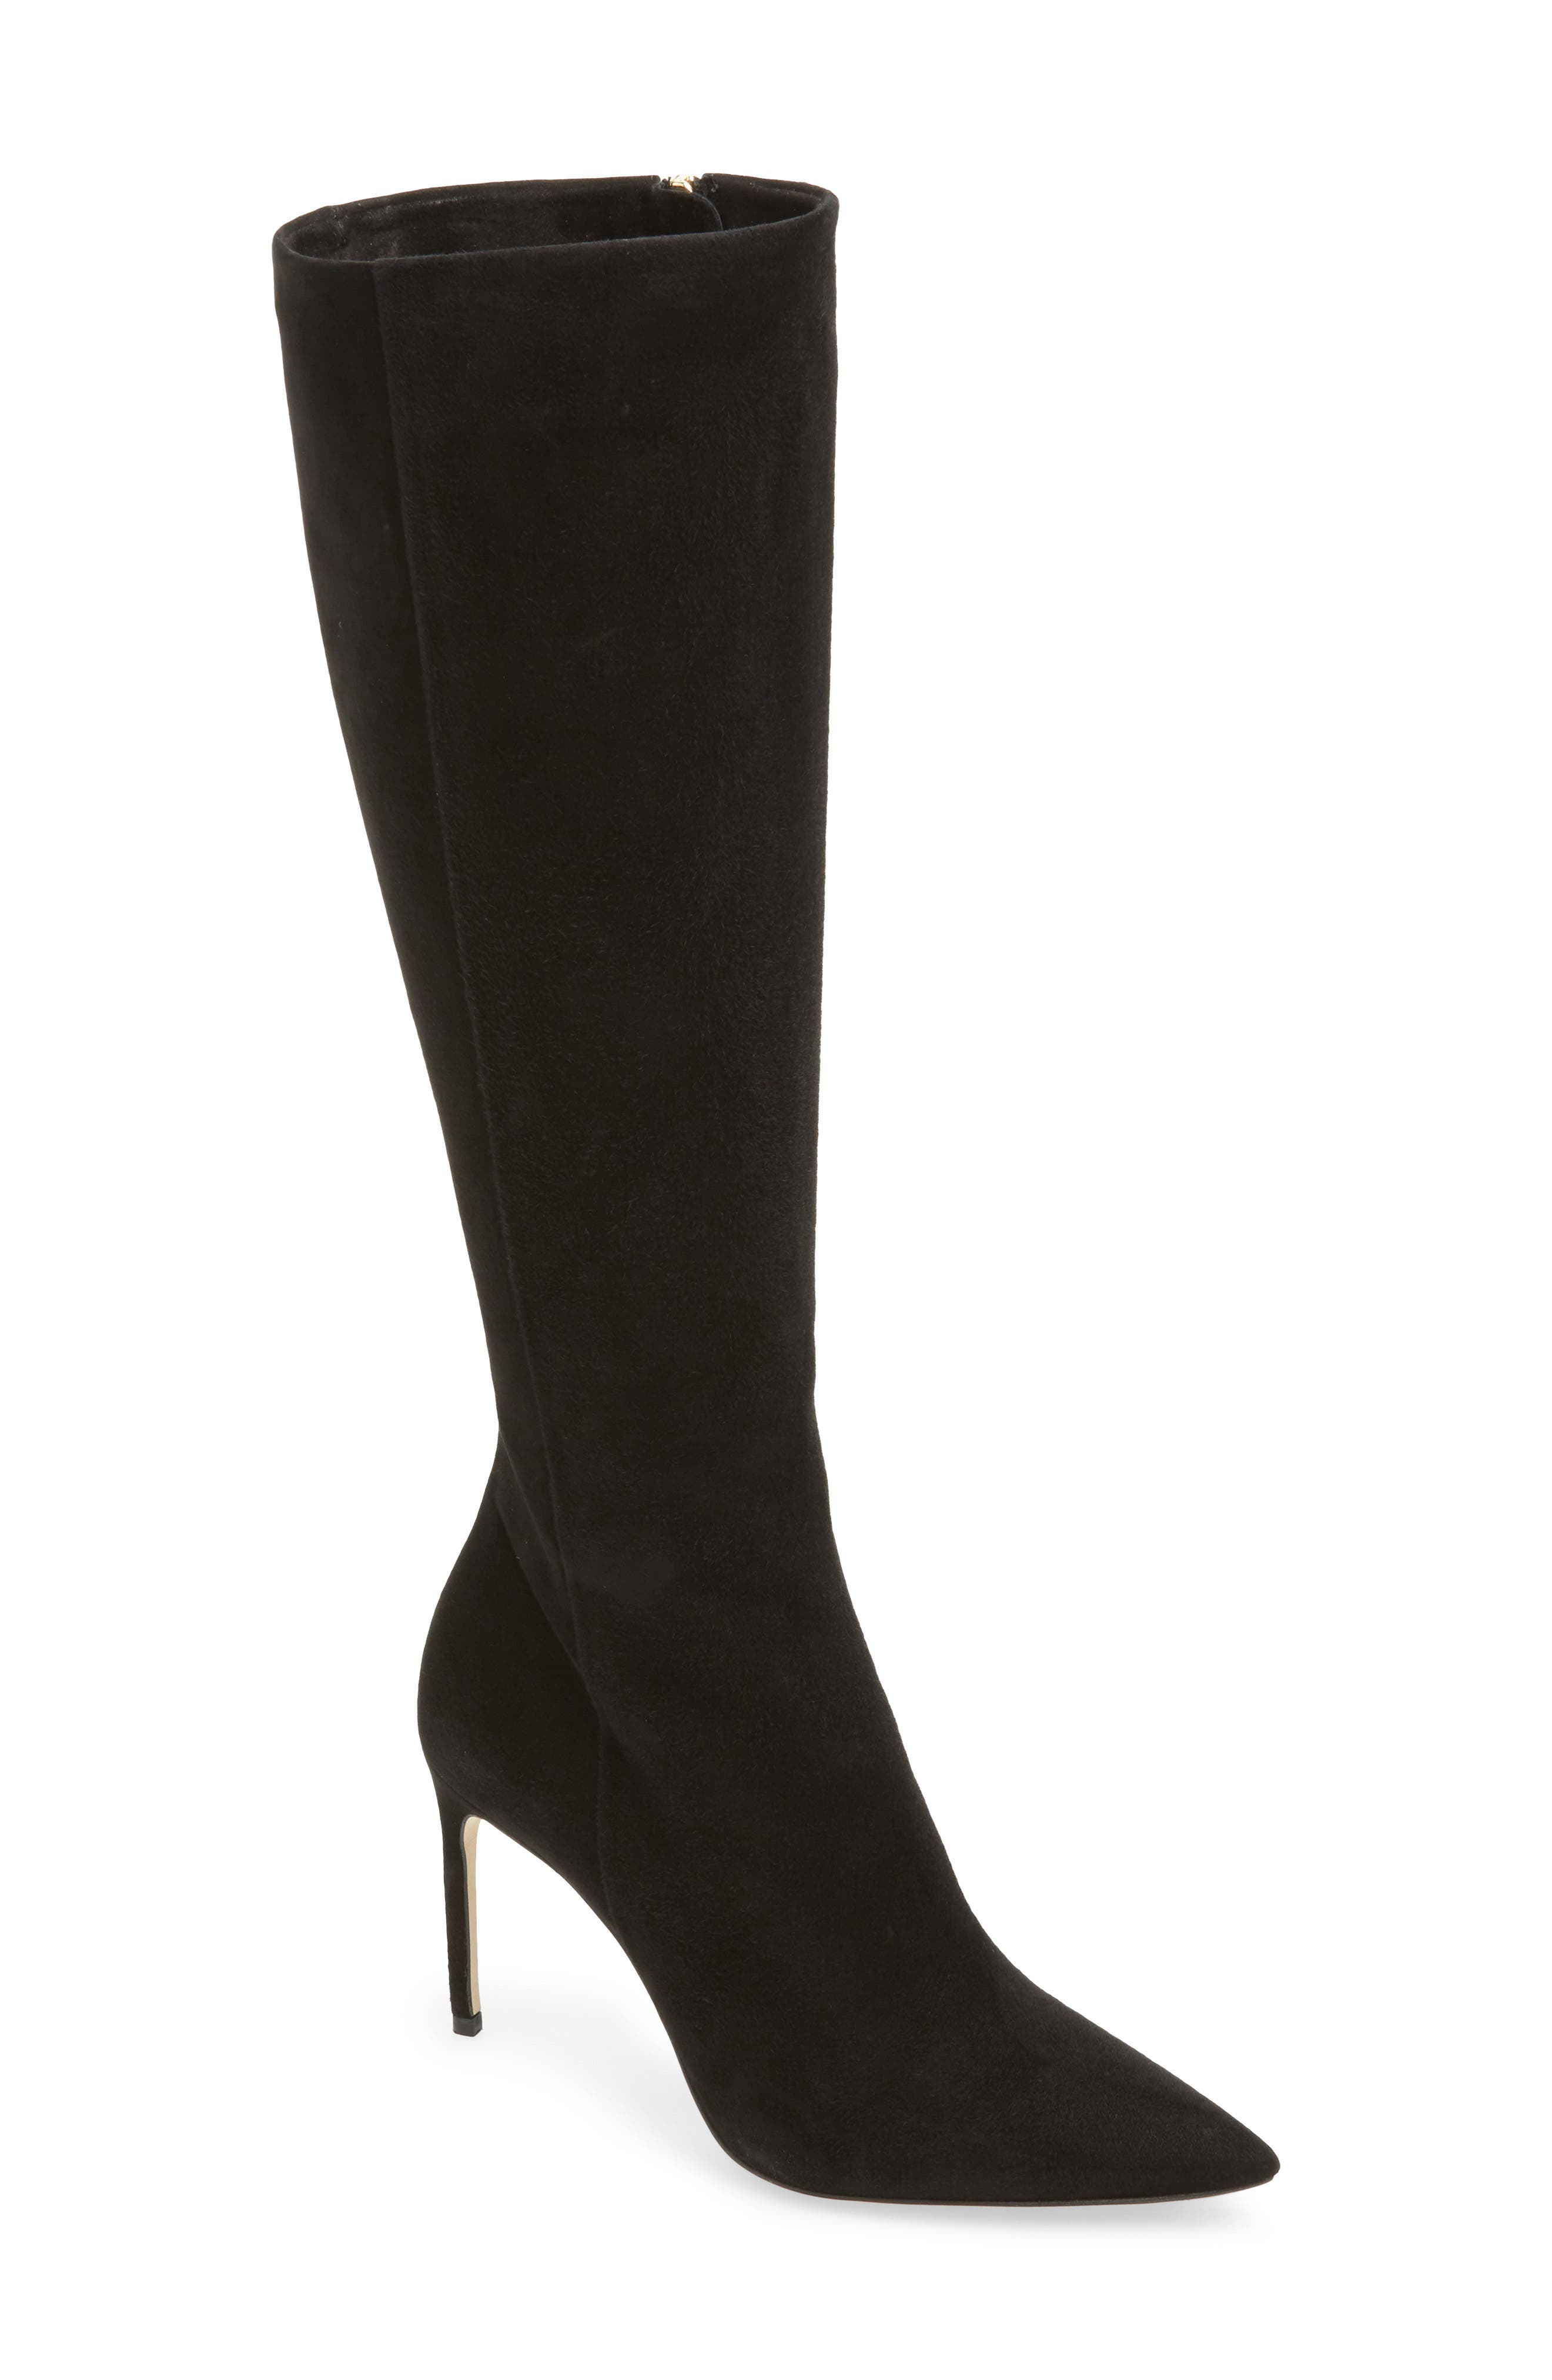 BRIAN ATWOOD Knee High Boot in Black Suede